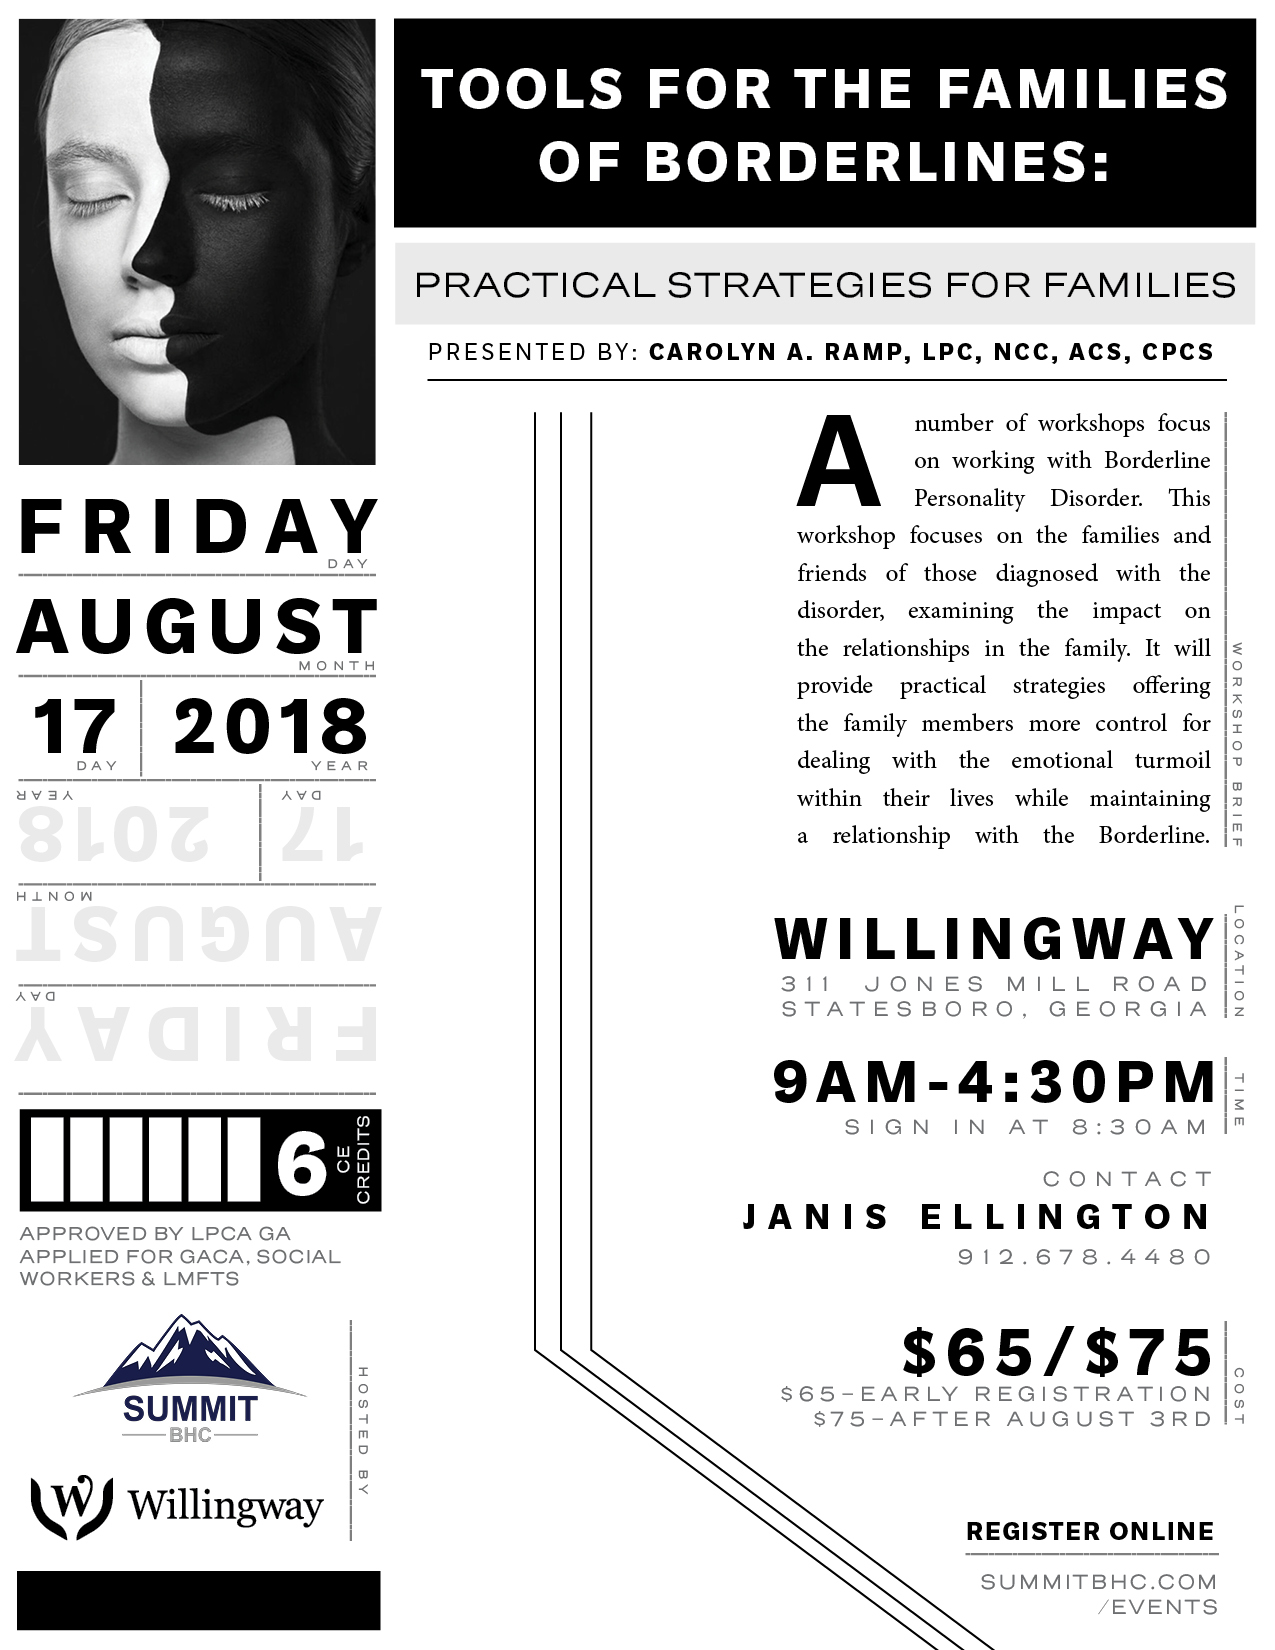 Tools For The Families of Borderlines- Willingway Events - Summit BHC Events